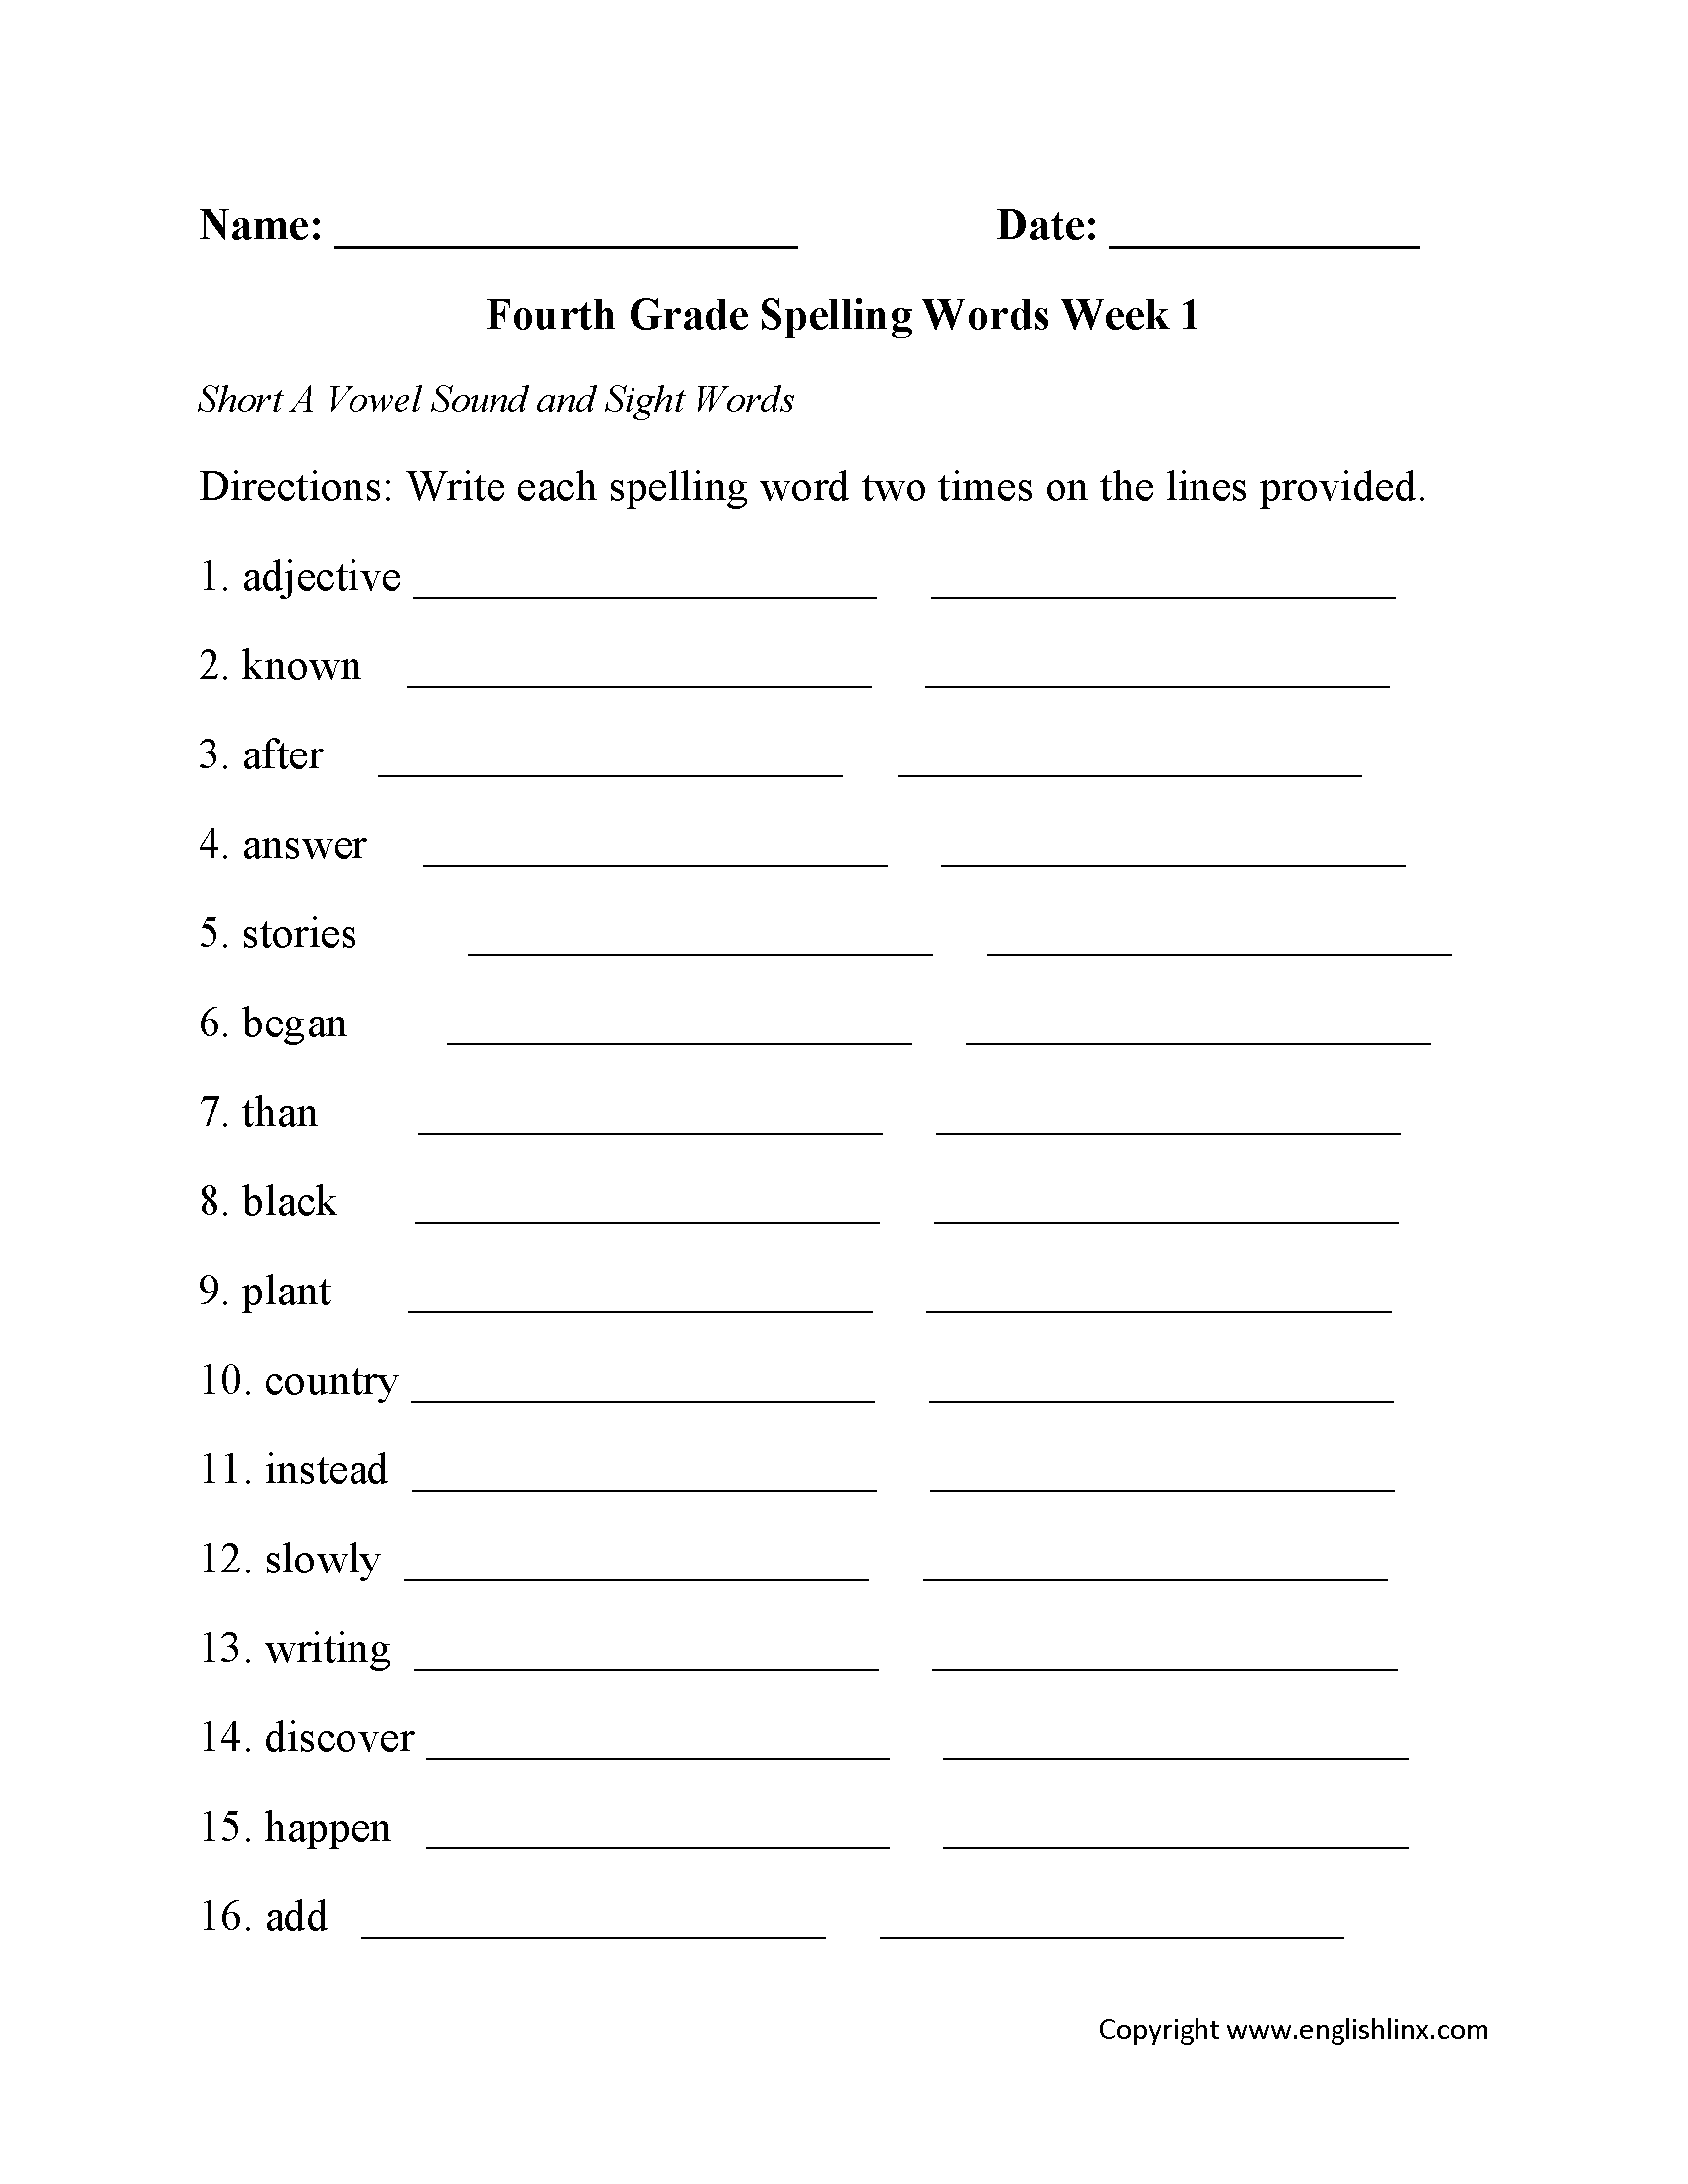 worksheet Spelling Grade 3 Worksheets spelling worksheets fourth grade worksheets